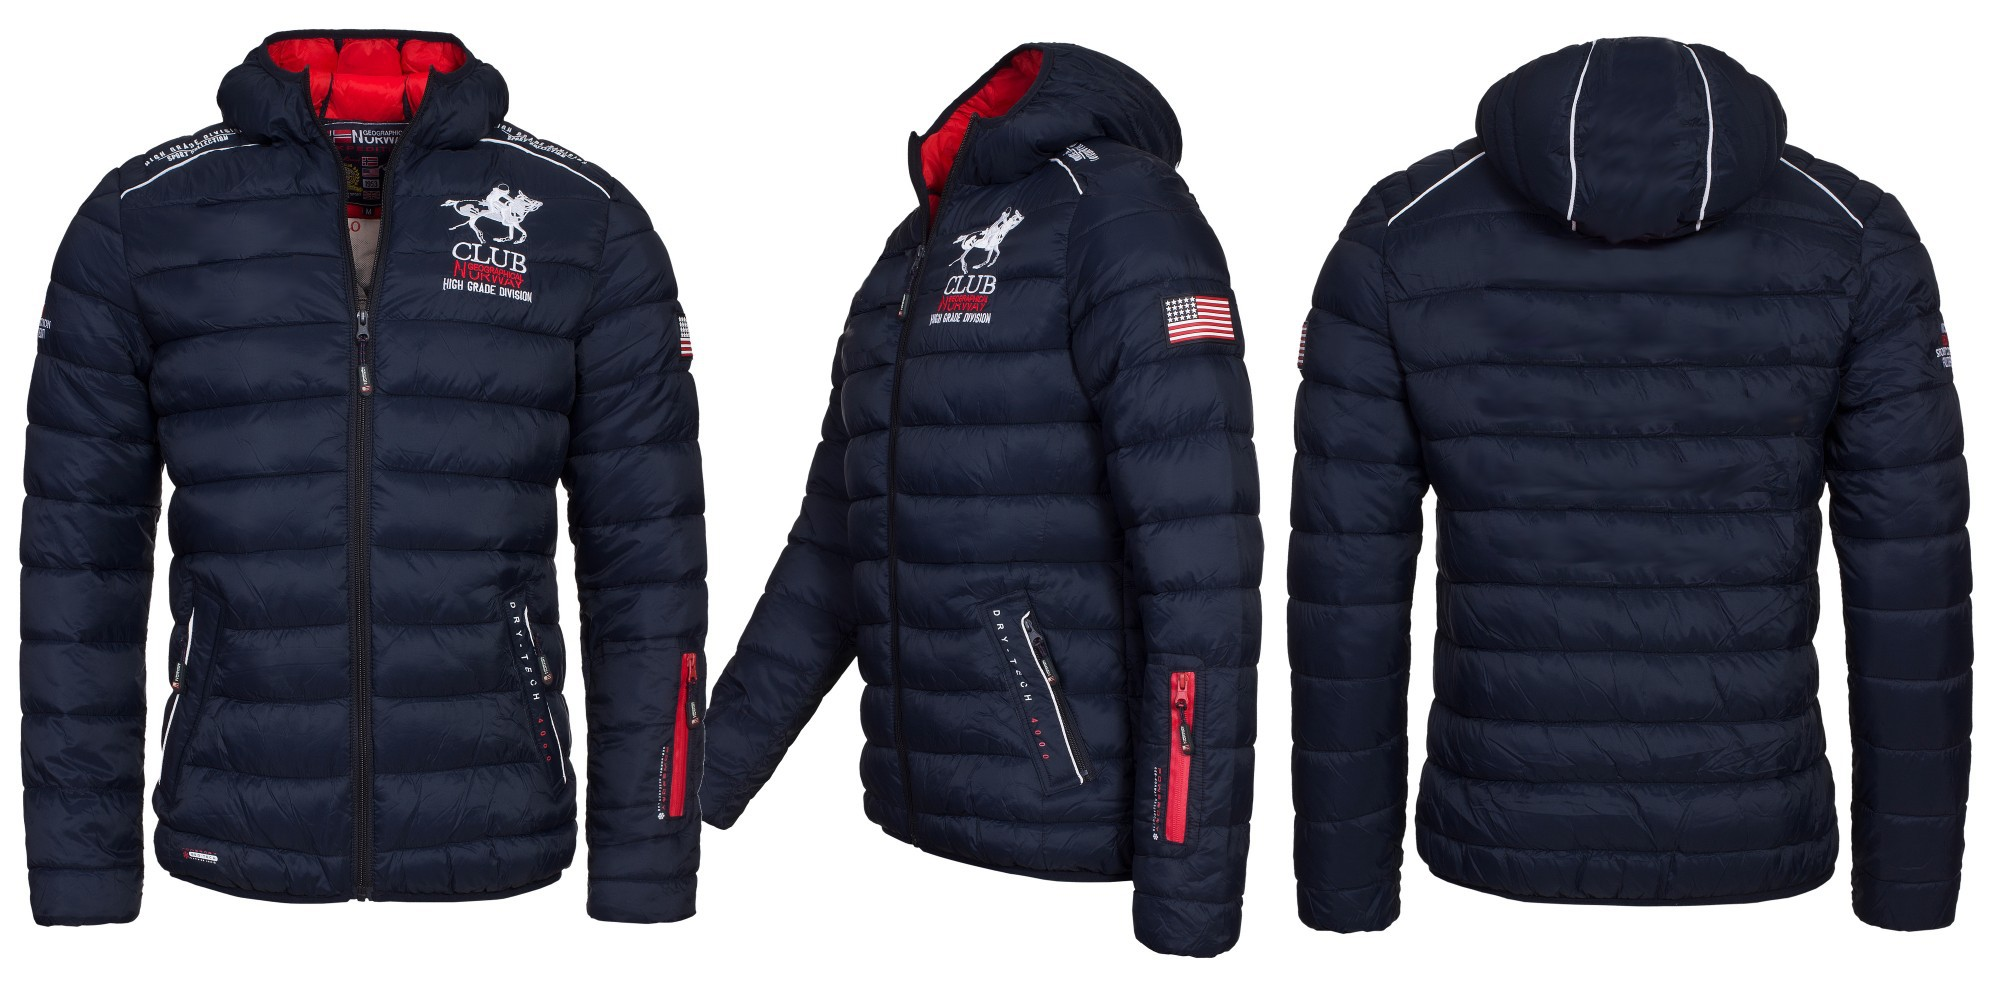 Steppjacke winterjacke geographical norway